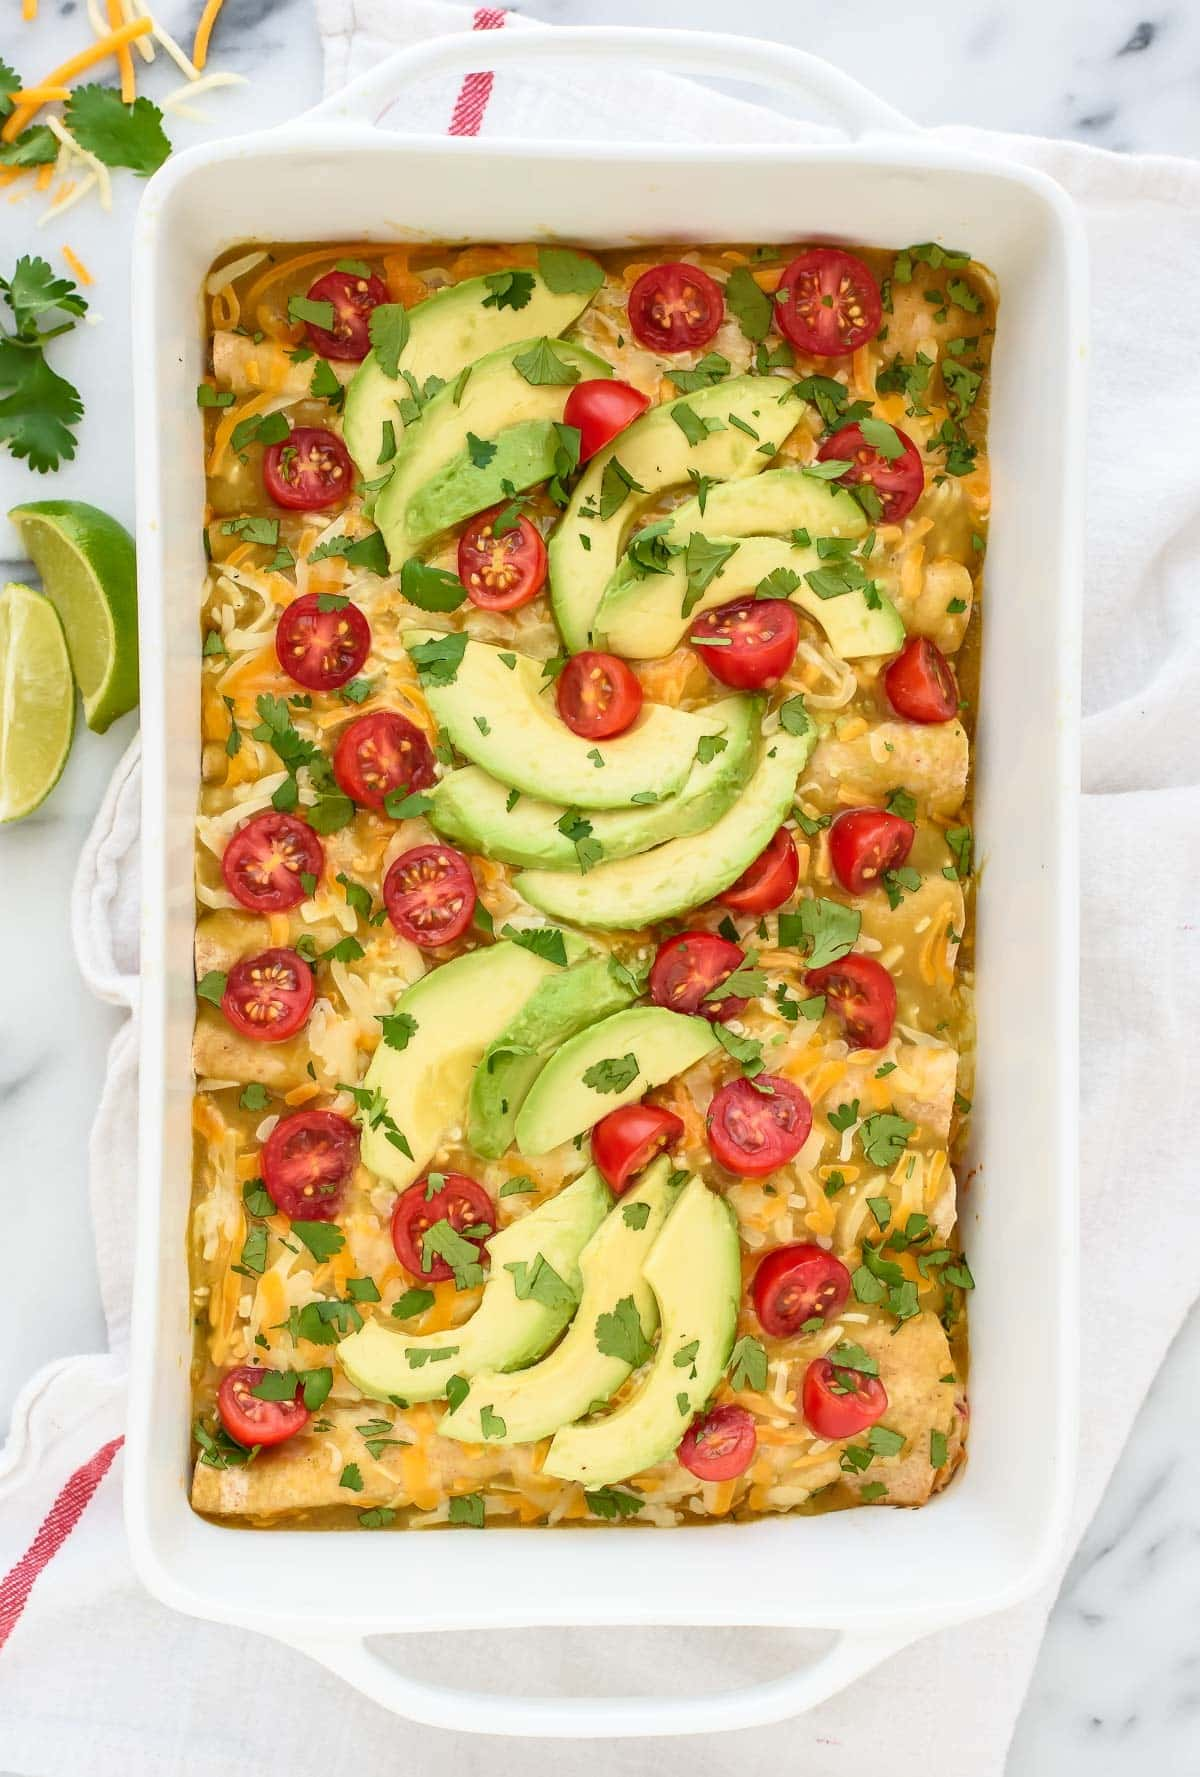 Creamy Green Chile Chicken Enchiladas. A simple and healthy recipe!